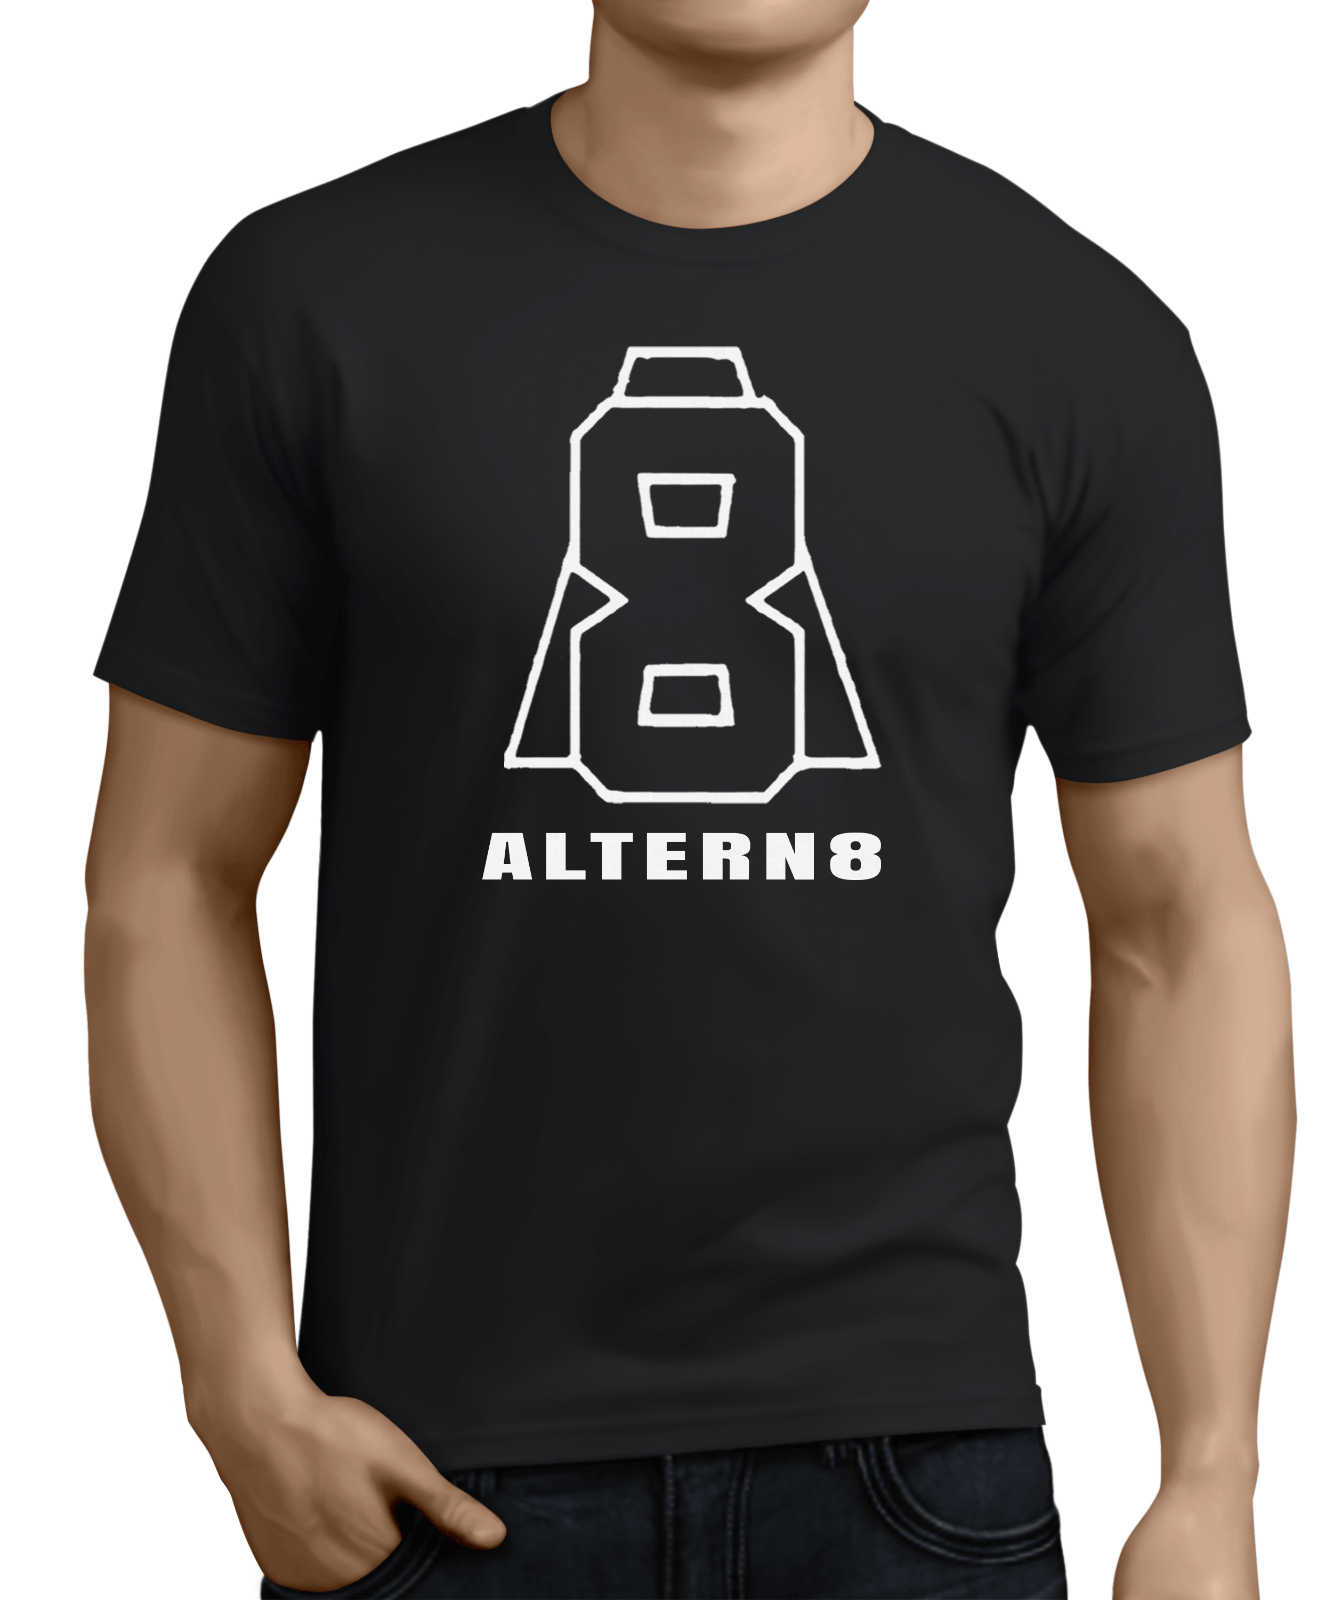 Altern-8, Oldschool Hardcore,Rave Music,1990S,Evapor8,Mark Archer,Electronic. 100% Cotton Fashion T Shirts Top Tee